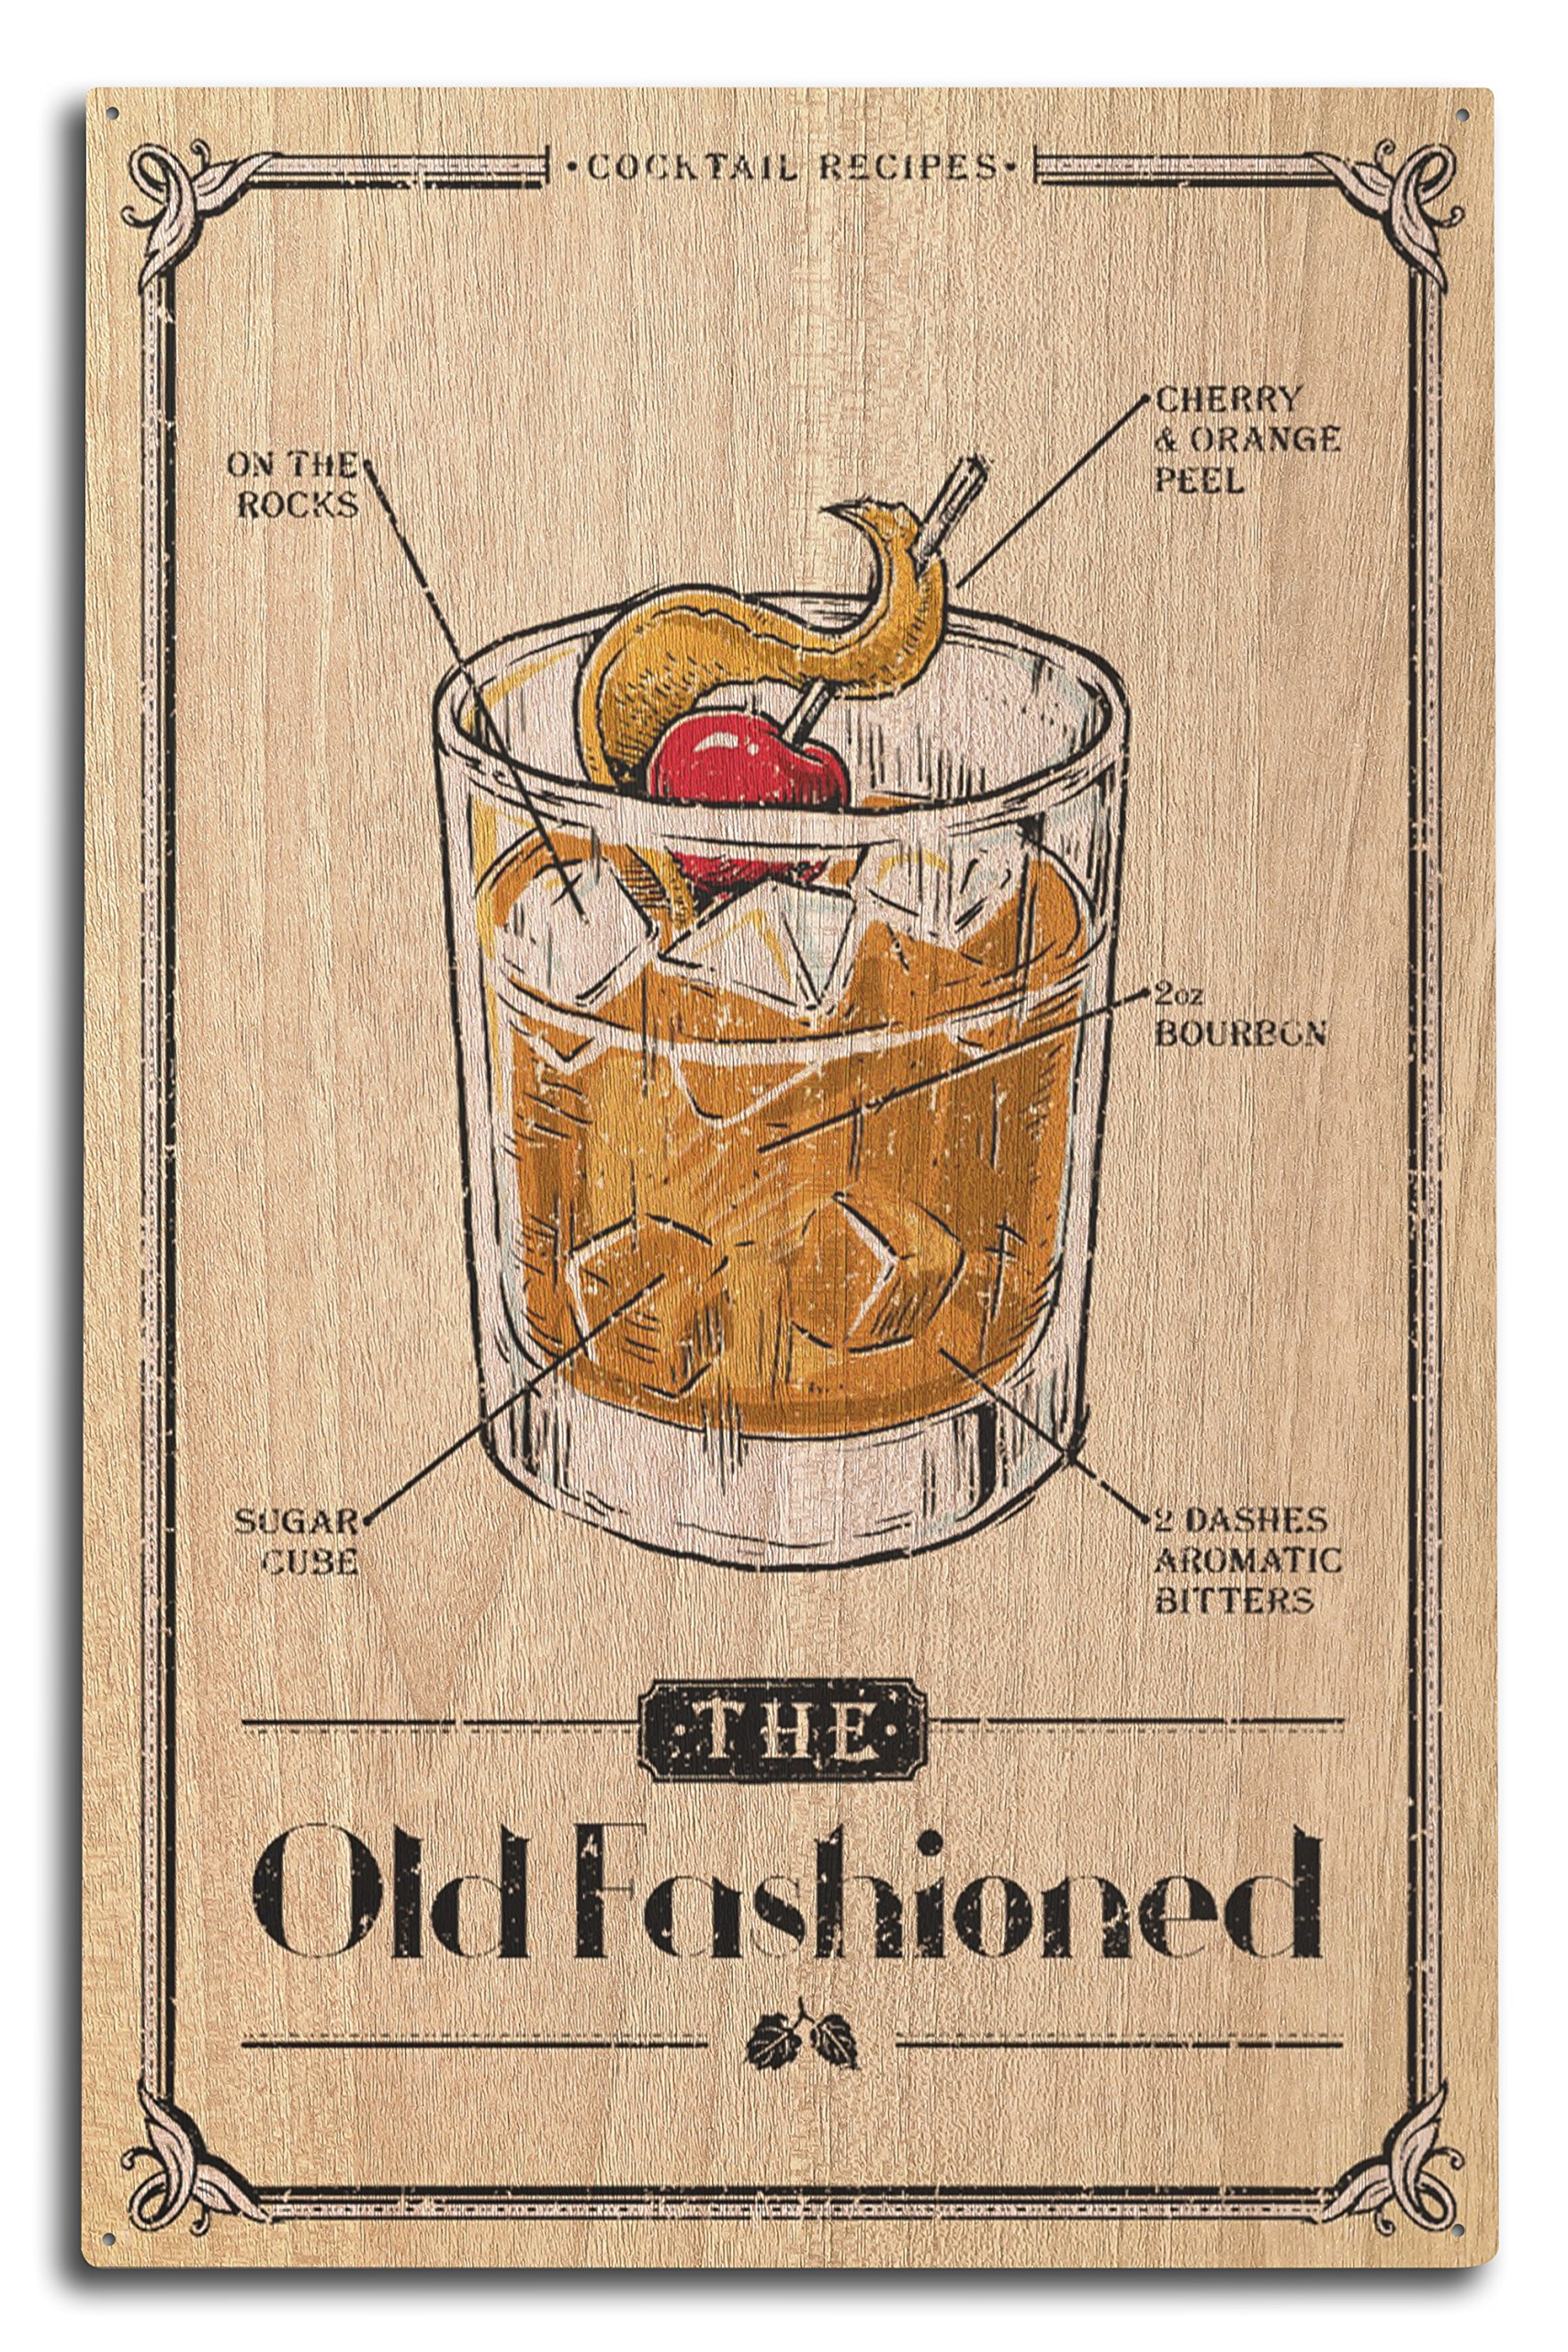 Prohibition - Cocktail Recipe - Old Fashioned (10x15 Wood Wall Sign, Wall Decor Ready to Hang)